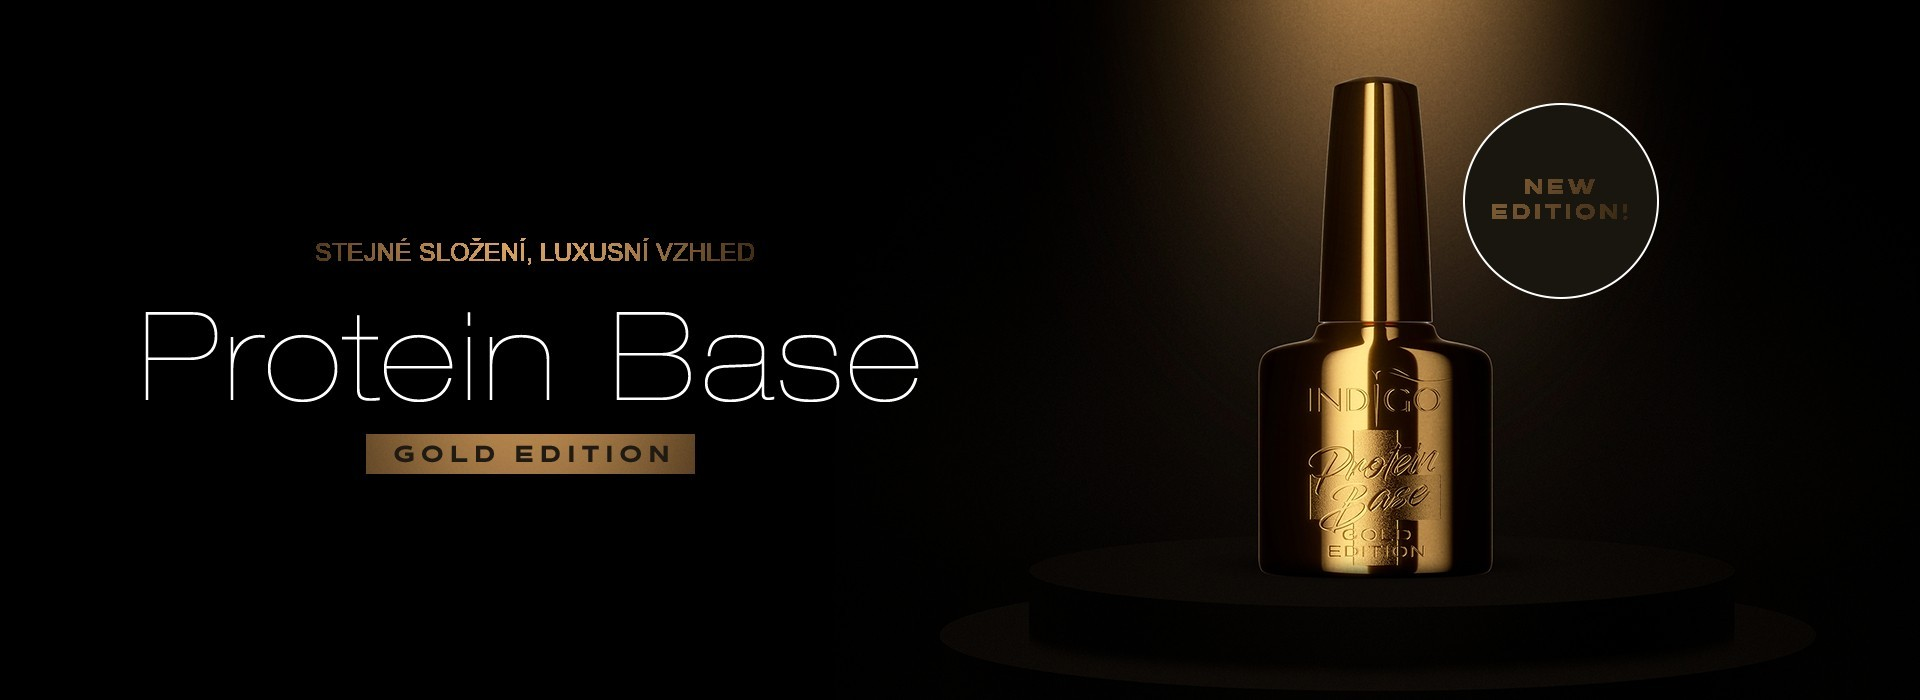 Protein Base Gold Edition